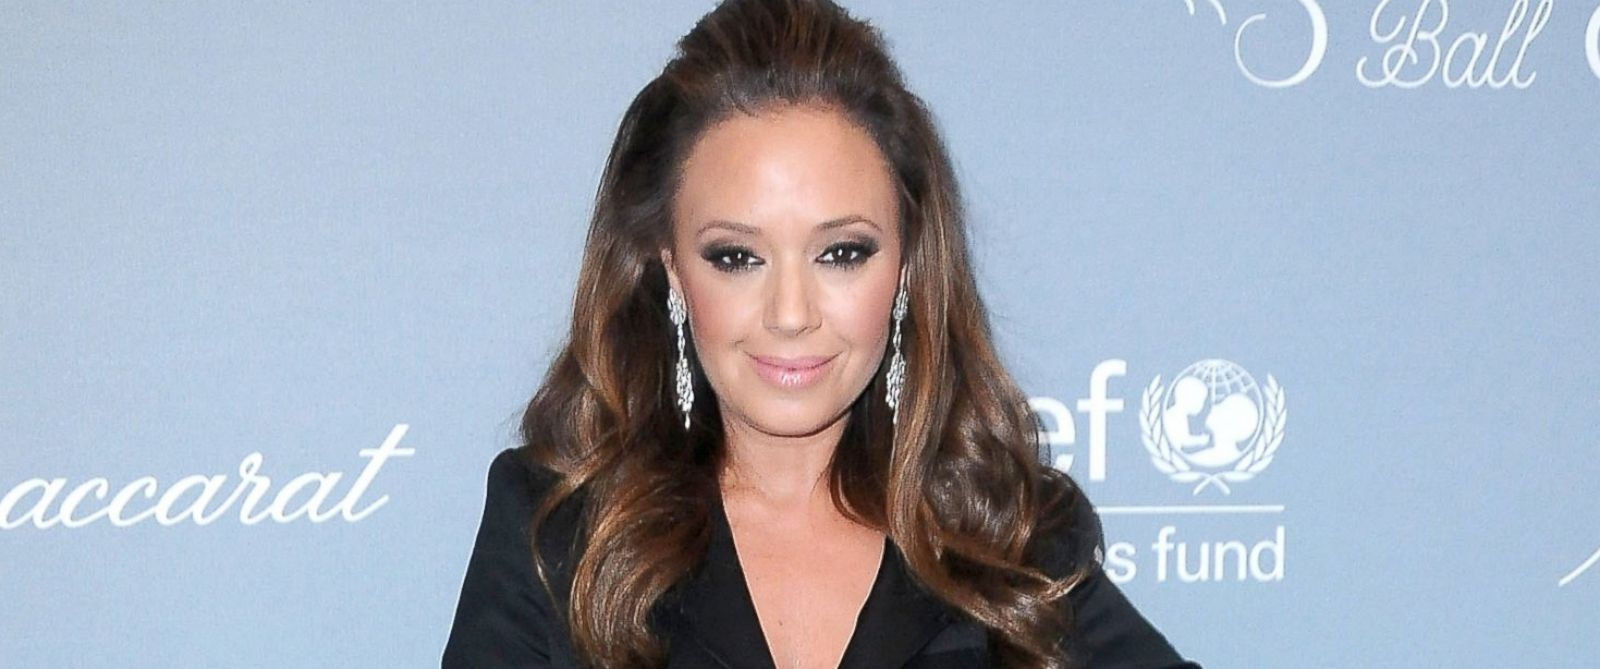 PHOTO: Leah Remini attends the 2014 UNICEF Ball presented by Baccarat, Jan. 14, 2014, at Regent Beverly Wilshire Hotel in Beverly Hills, Calif.